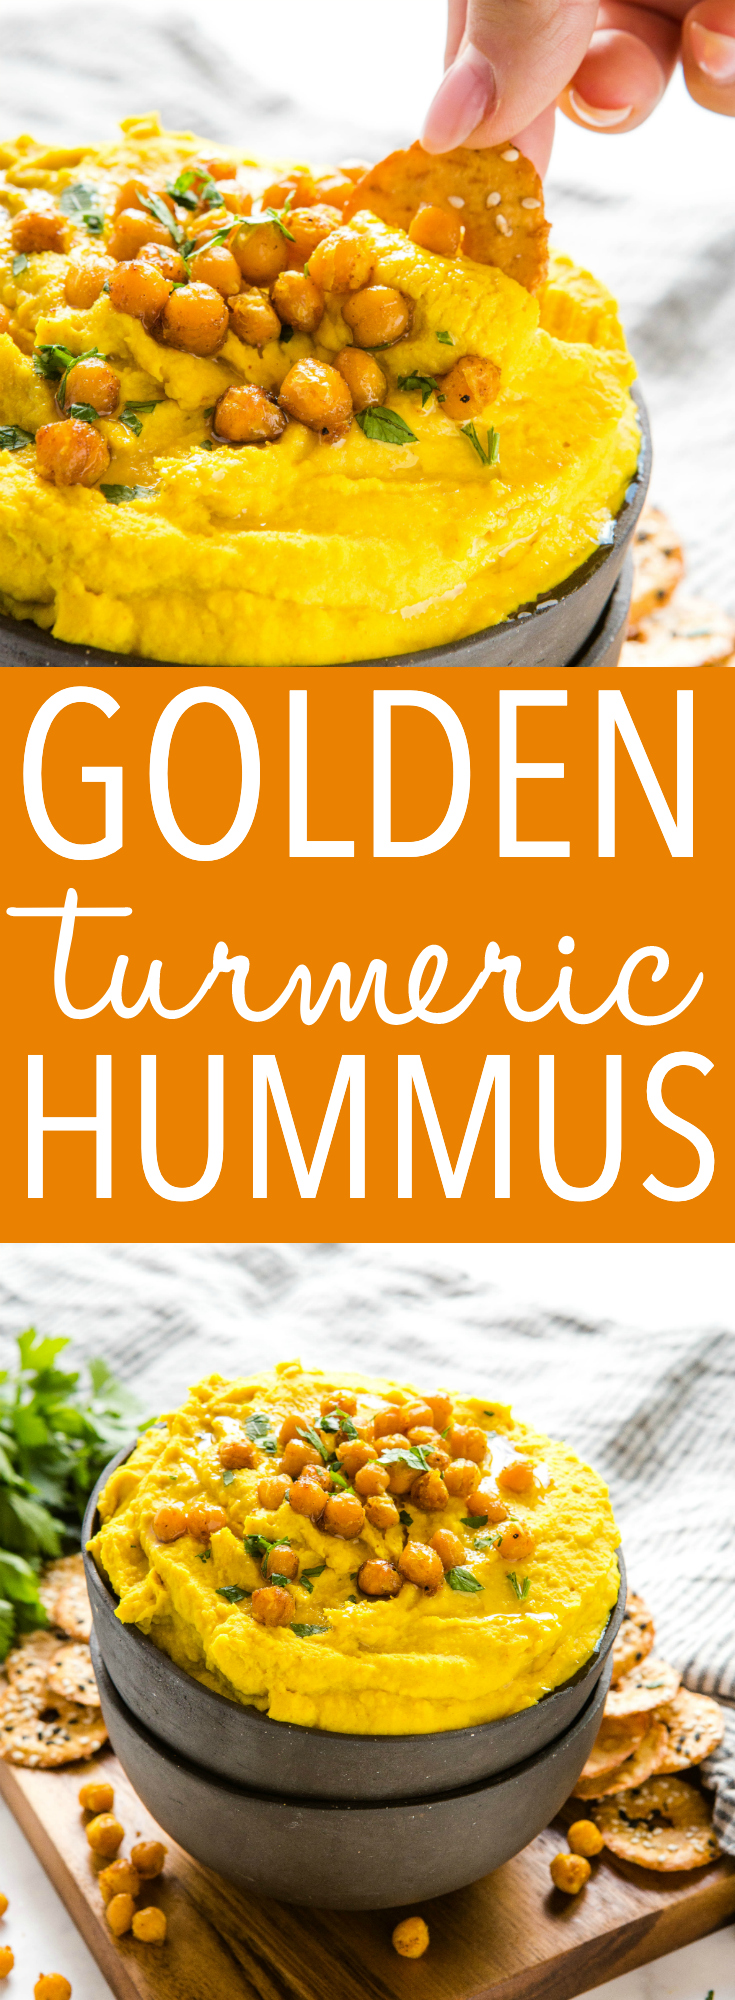 This Golden Turmeric Hummus is the perfect easy-to-make snack or appetizer made with chickpeas, turmeric and garlic! Creamy and smooth and so easy to make! Recipe from thebusybaker.ca! #turmeric #hummus #snack #appetizer #superfood #health #healthy #homemade via @busybakerblog